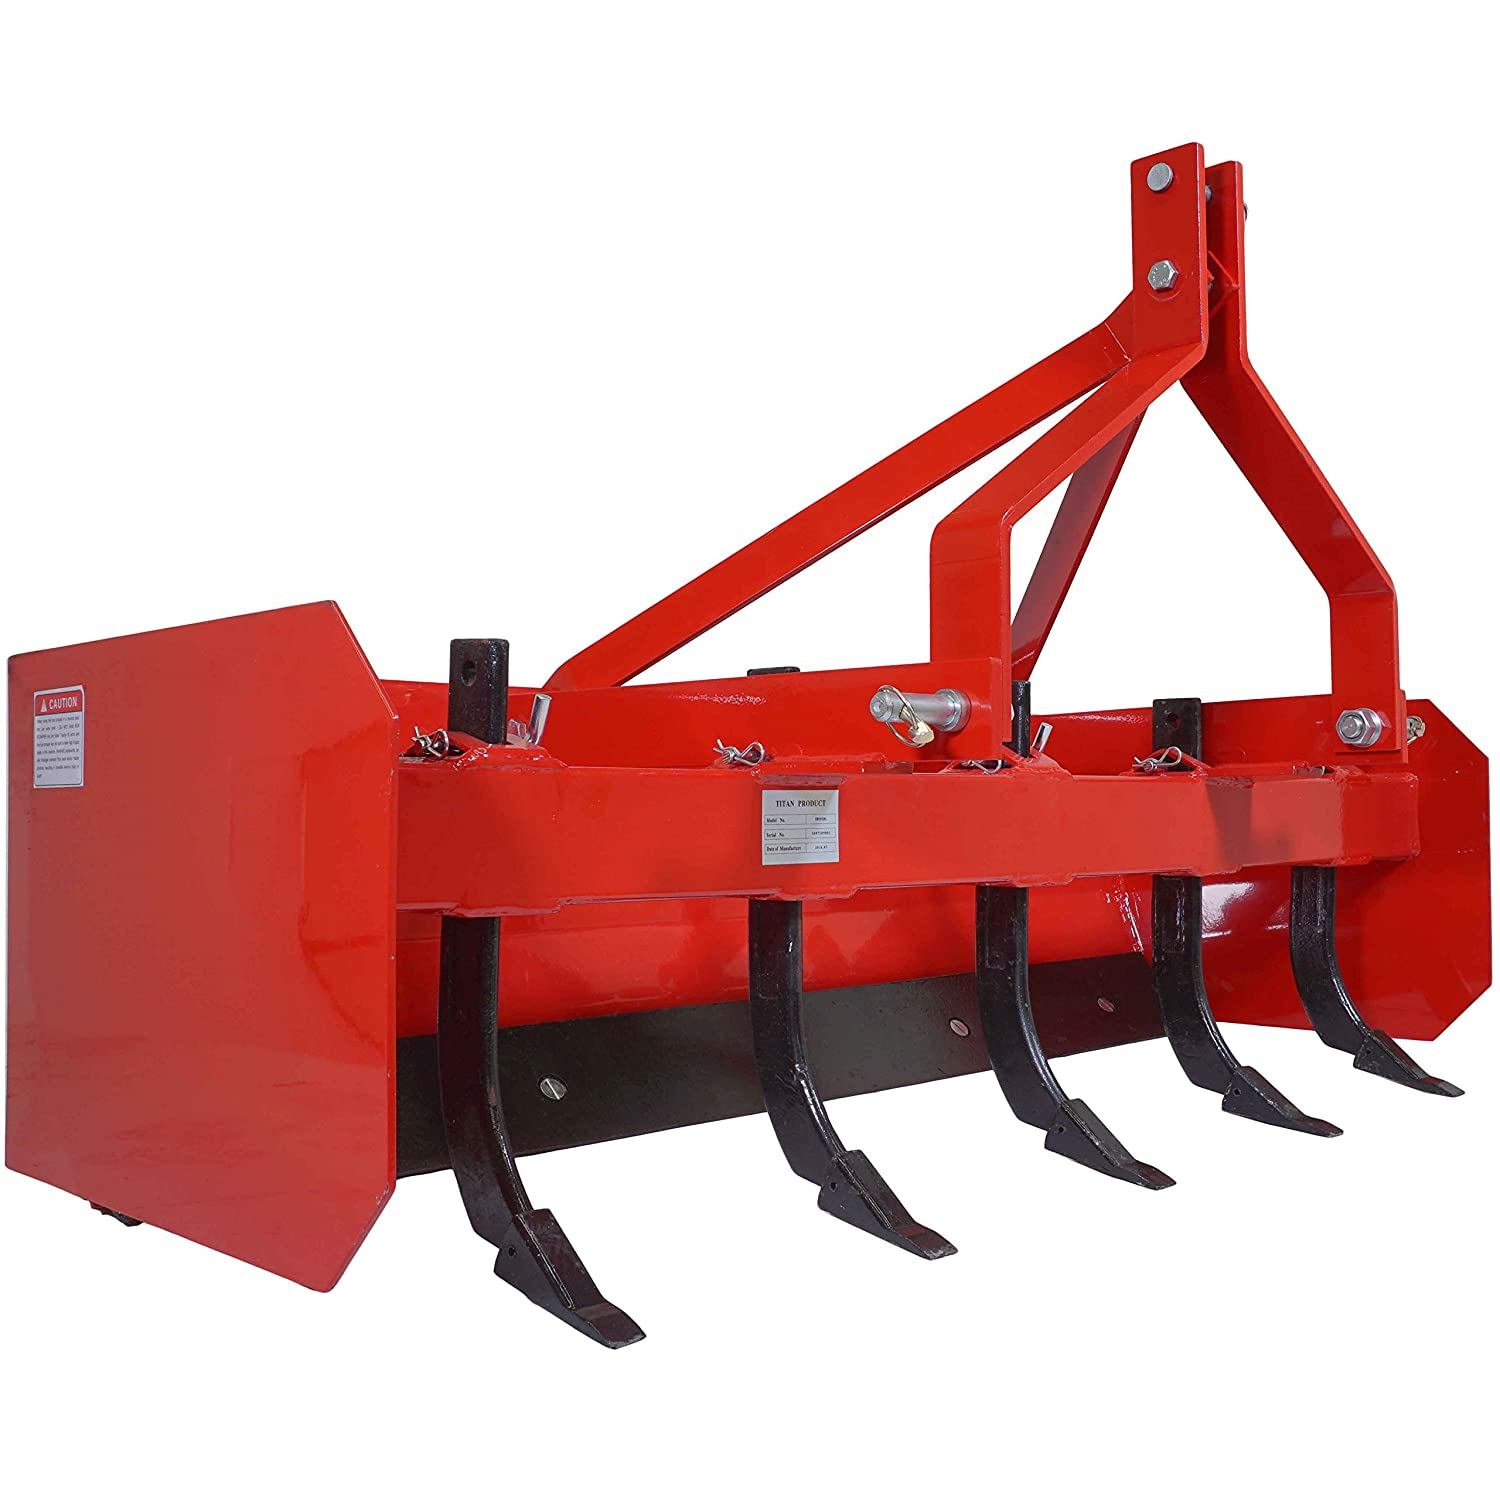 Top 5 best garden tractor box blades (2019 Reviews and Buying Guide) 1